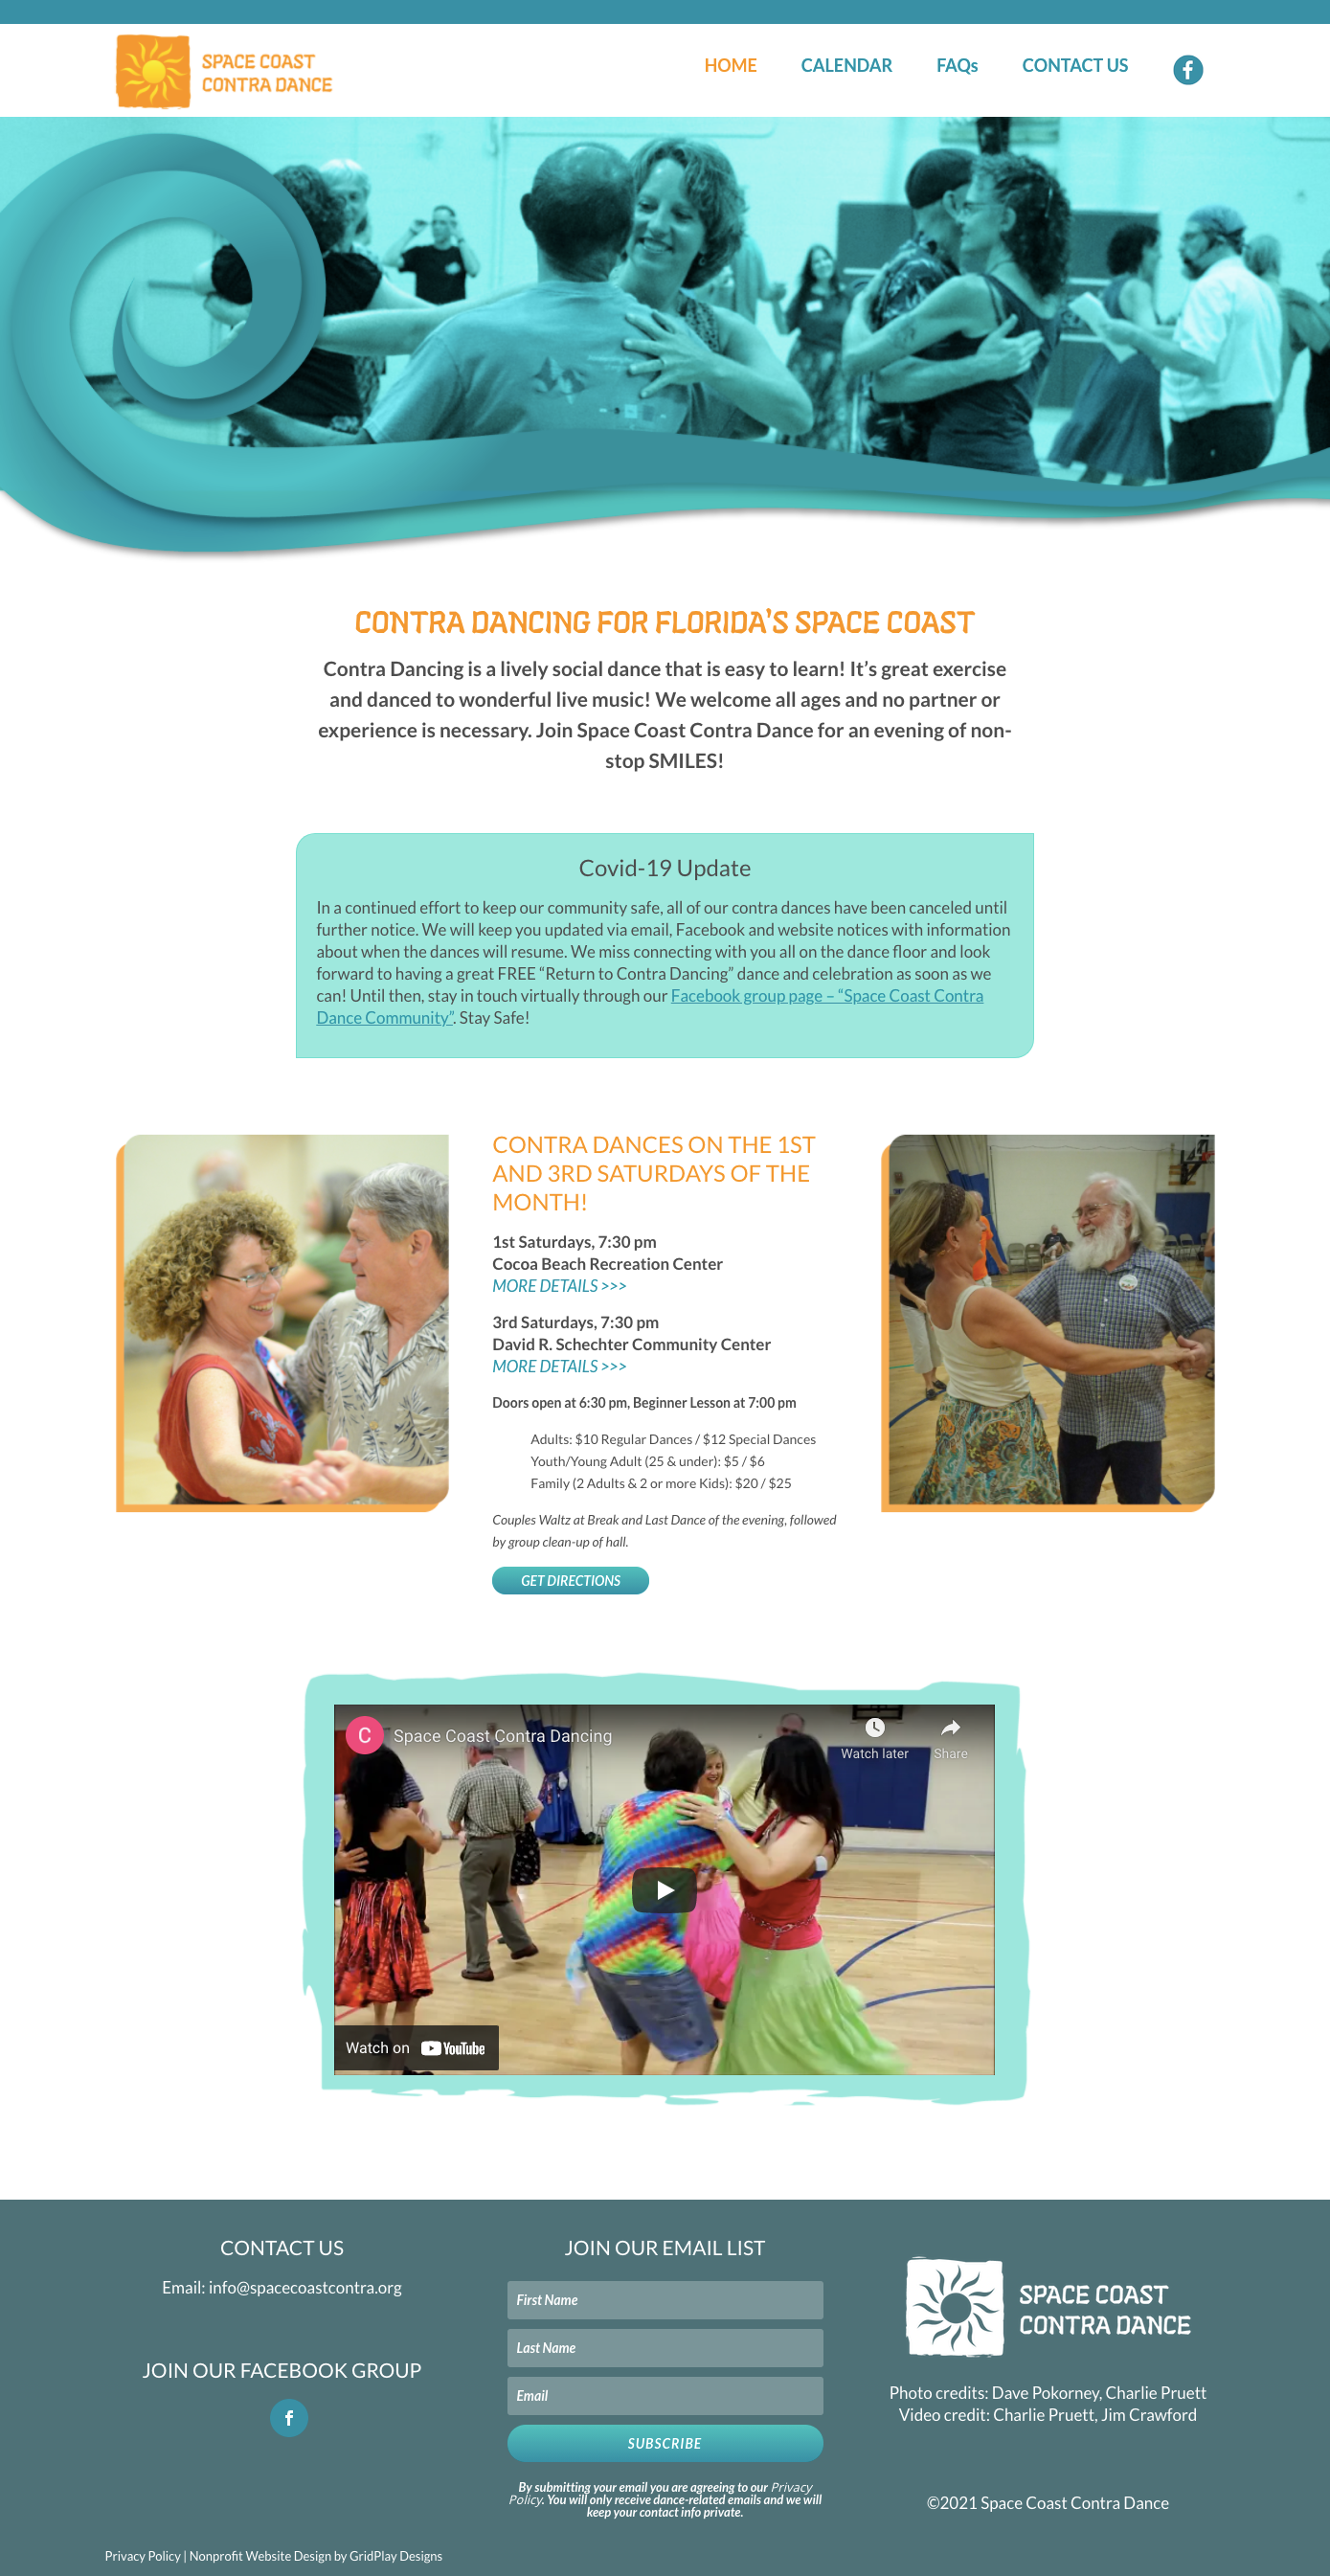 Space Coast Contra Dance Homepage